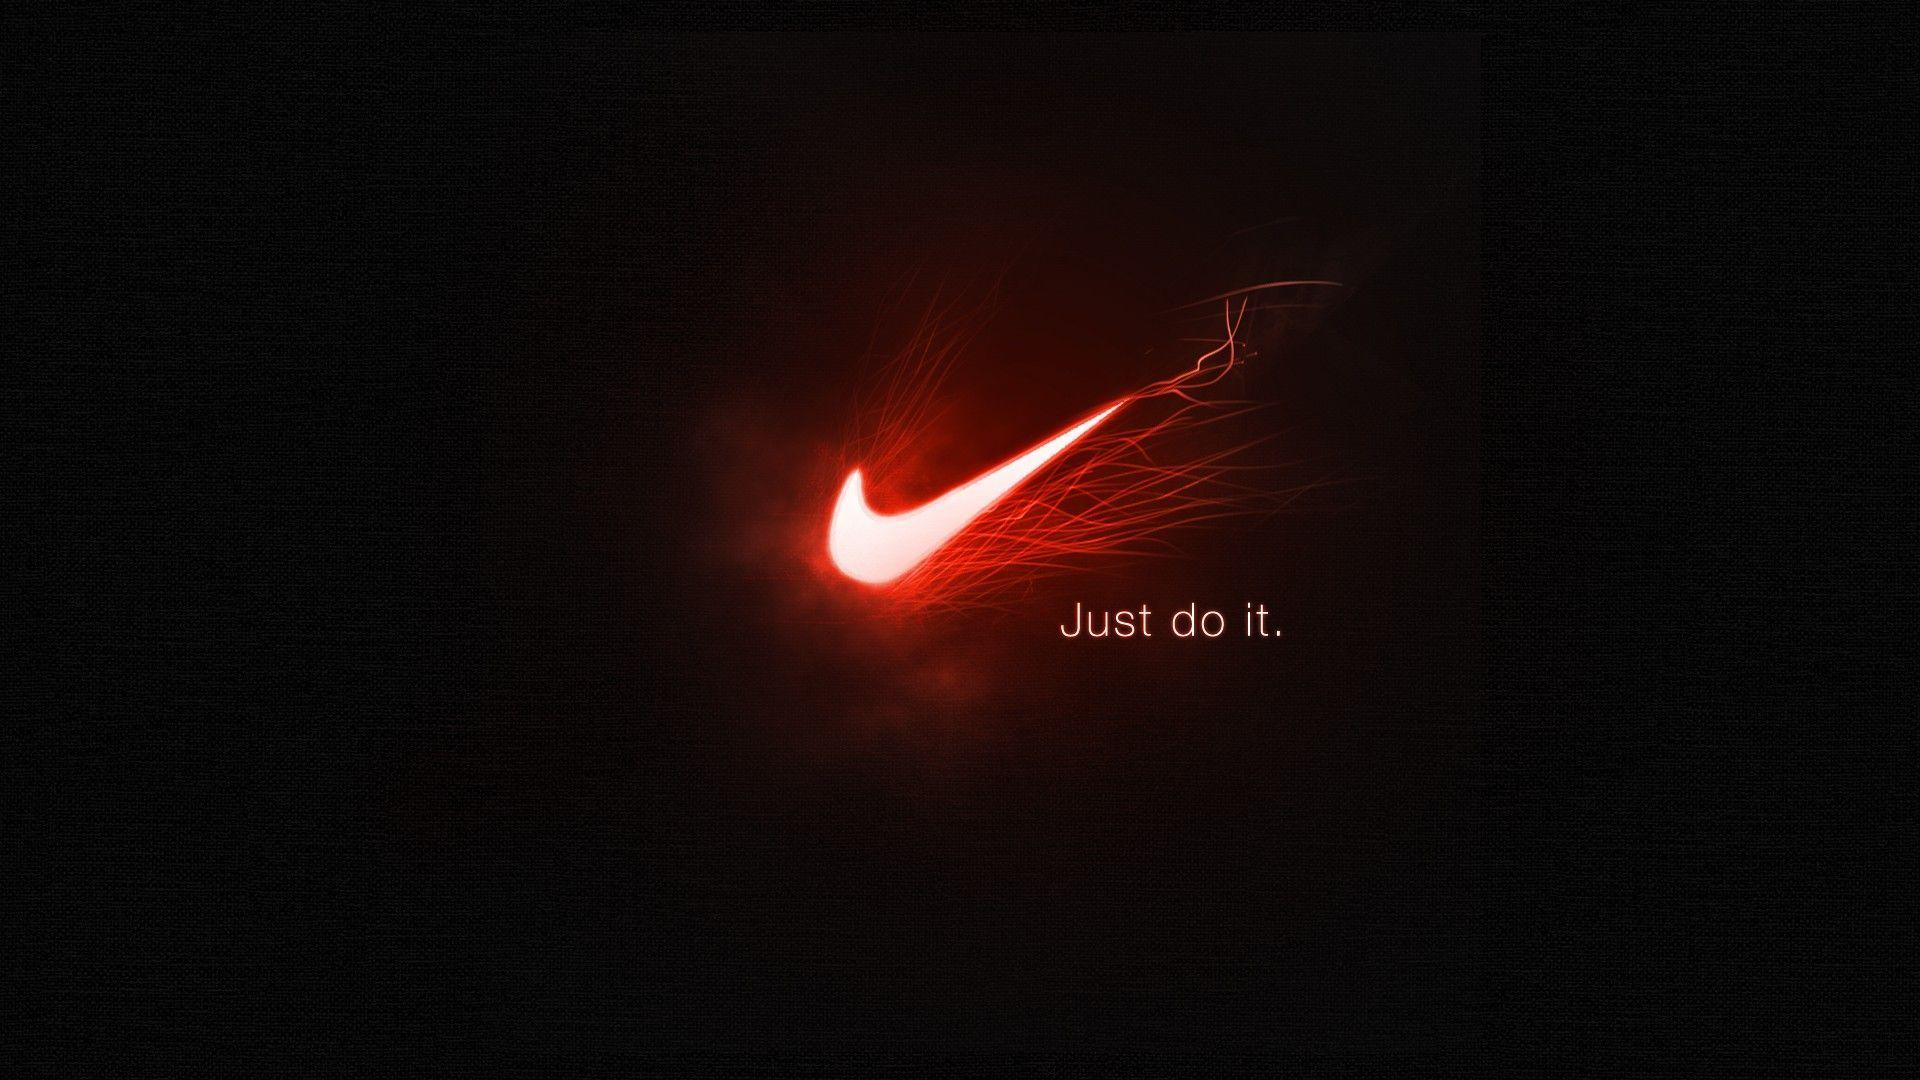 Image For > Nike Just Do It Wallpapers Iphone